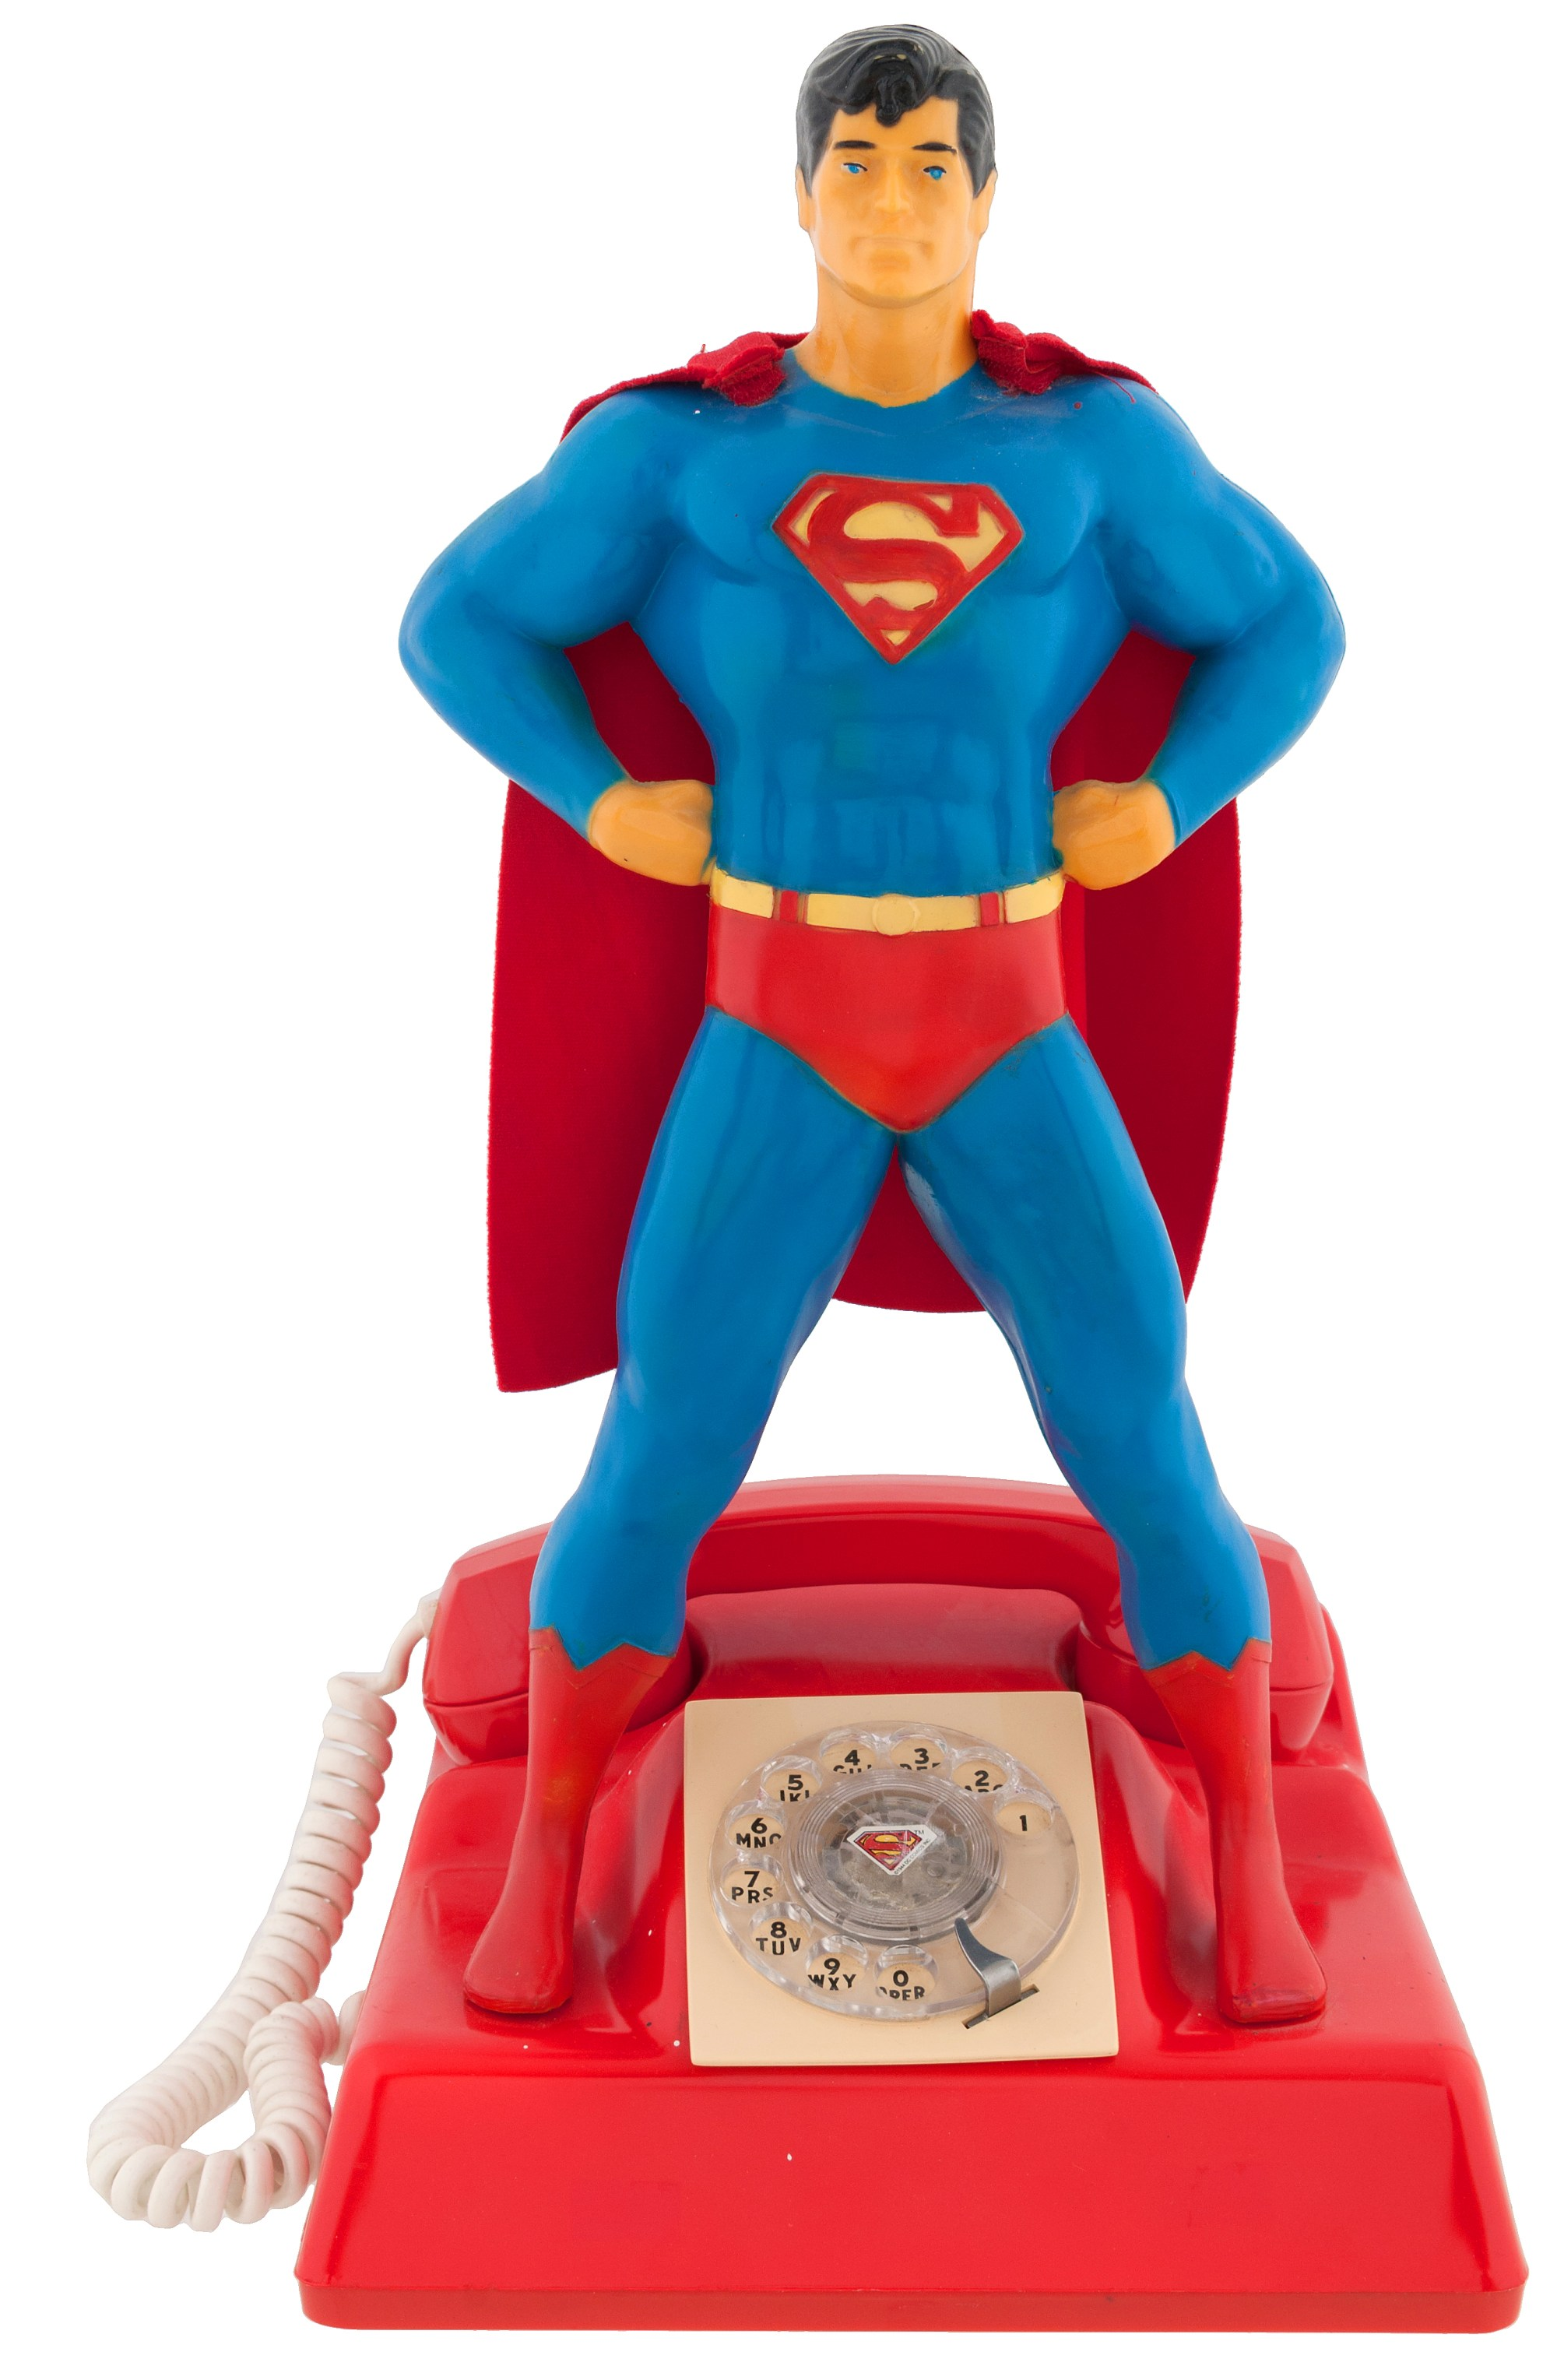 hight resolution of superman telephone 1978 rotary dial model by microcommunications